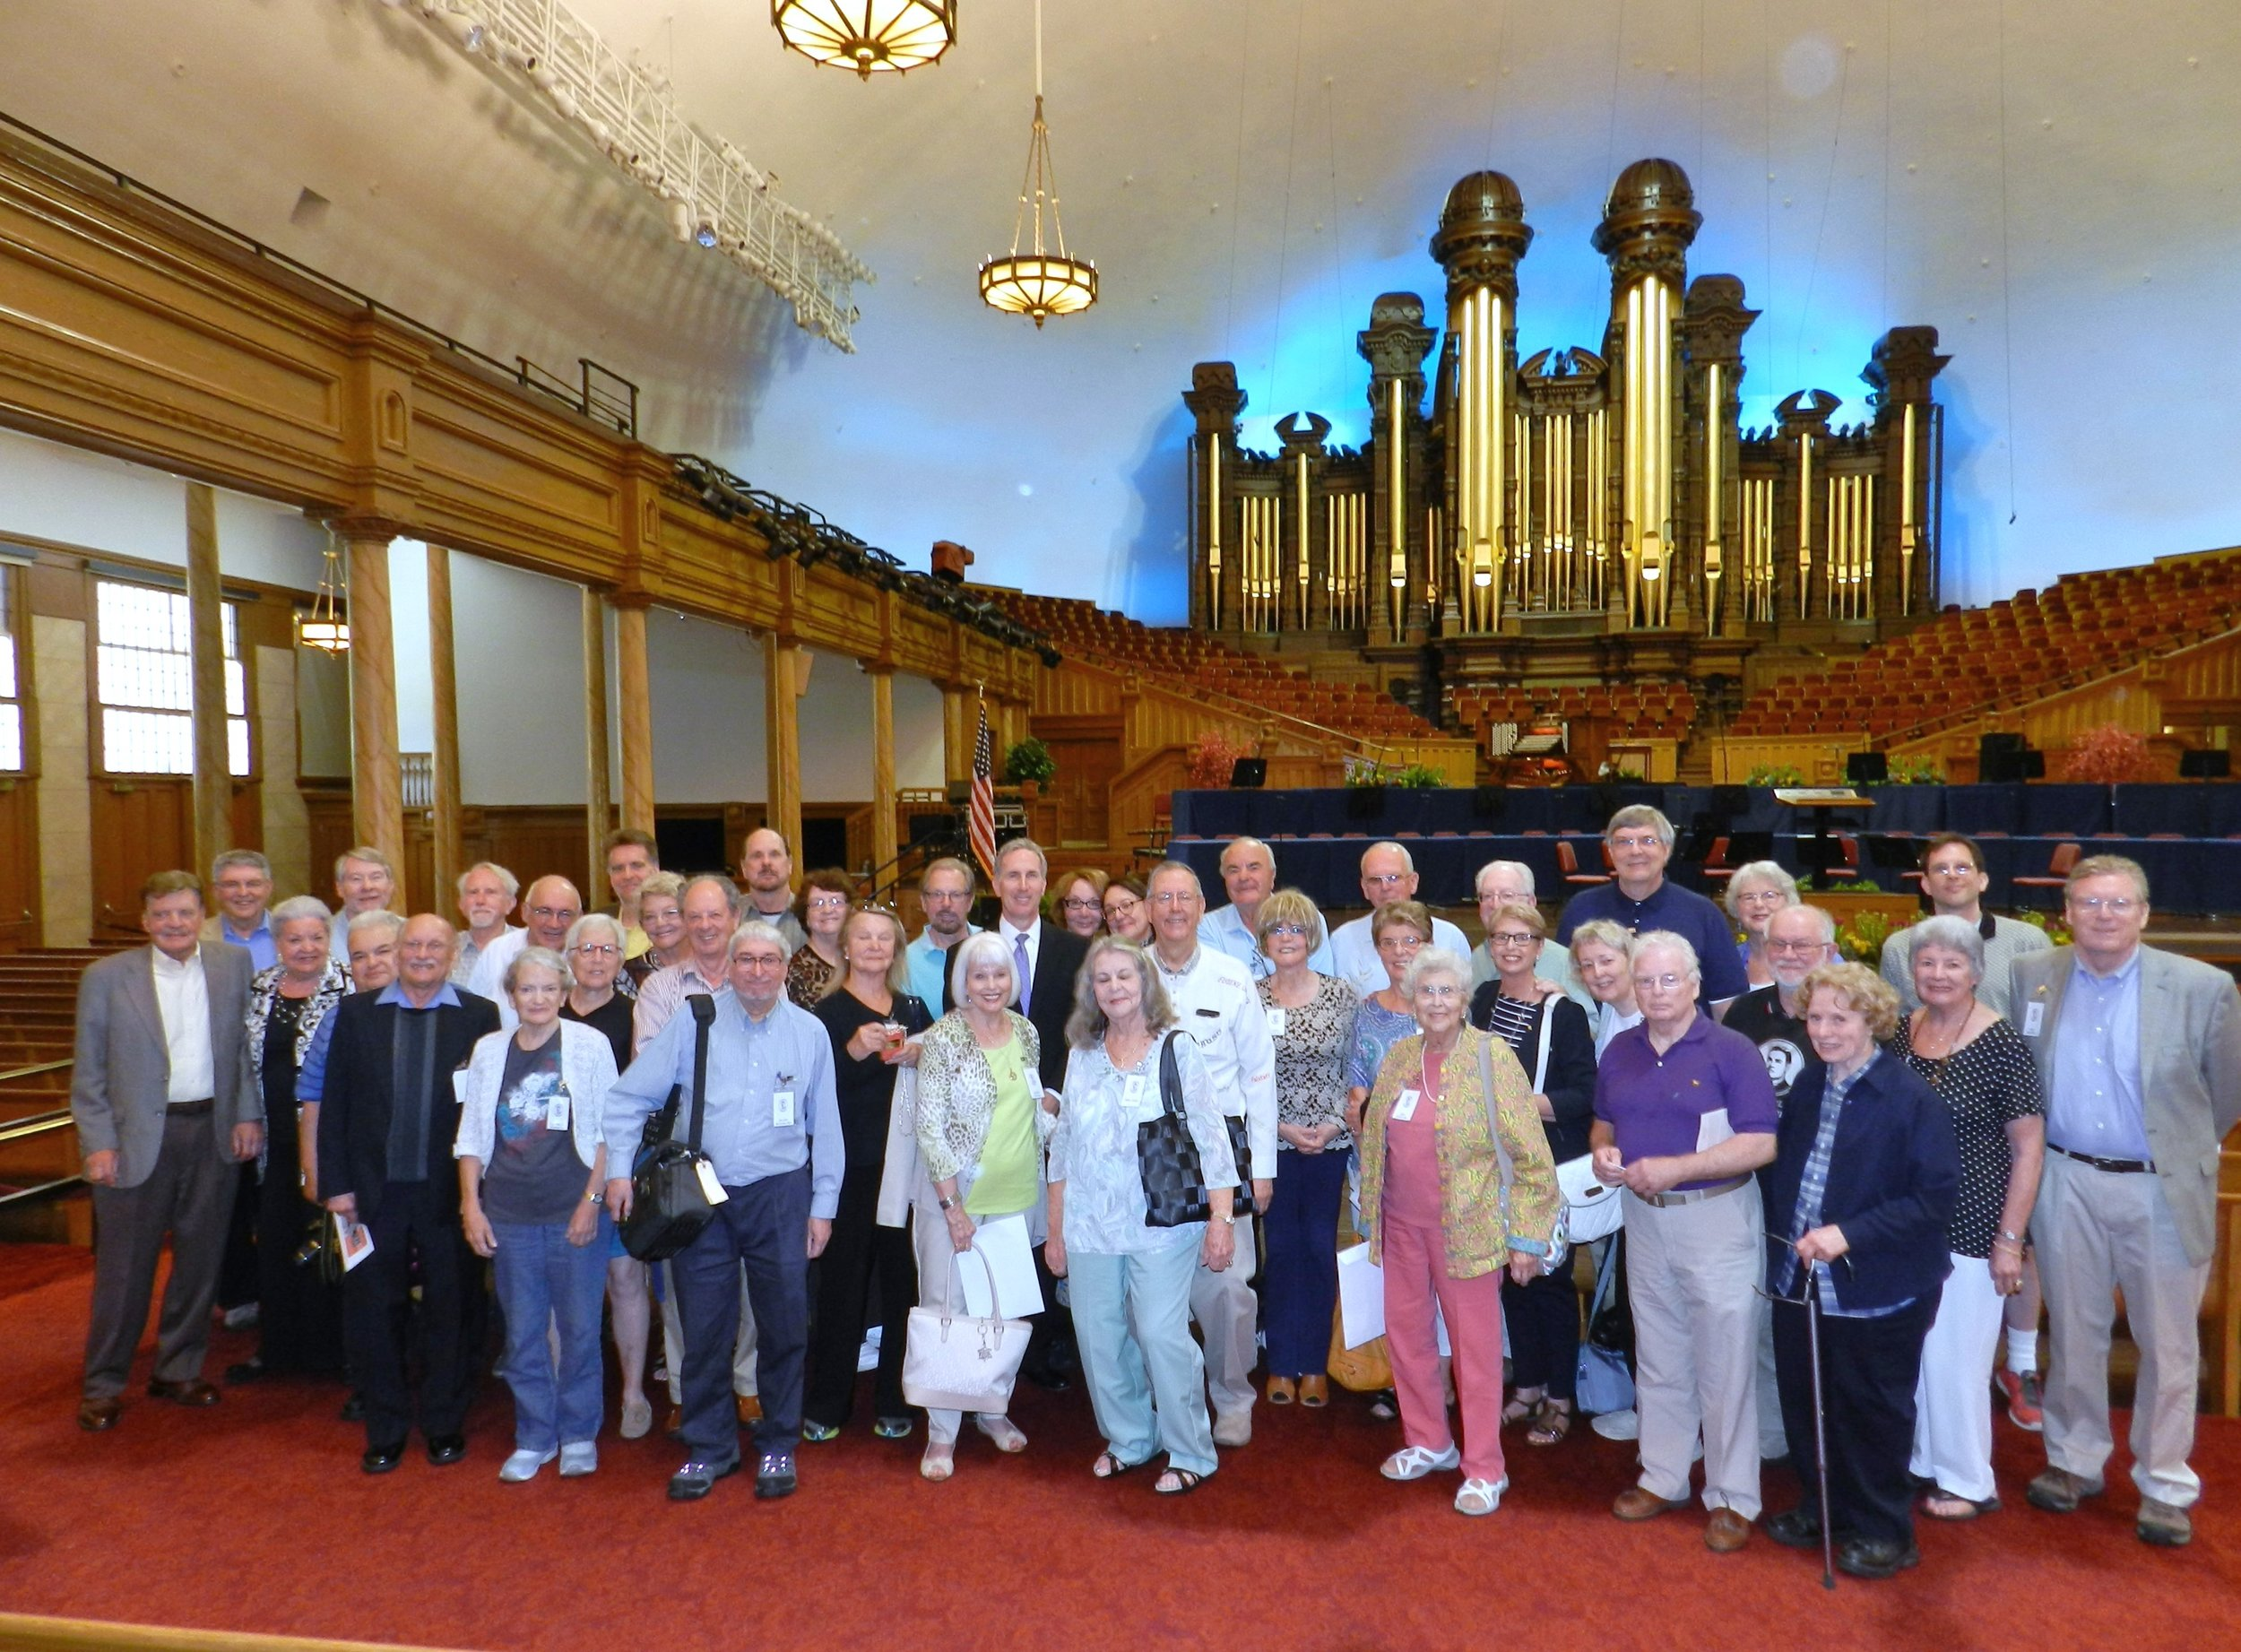 Members of JBS-USA in the Morman Tabernacle with organist Richard Elliott